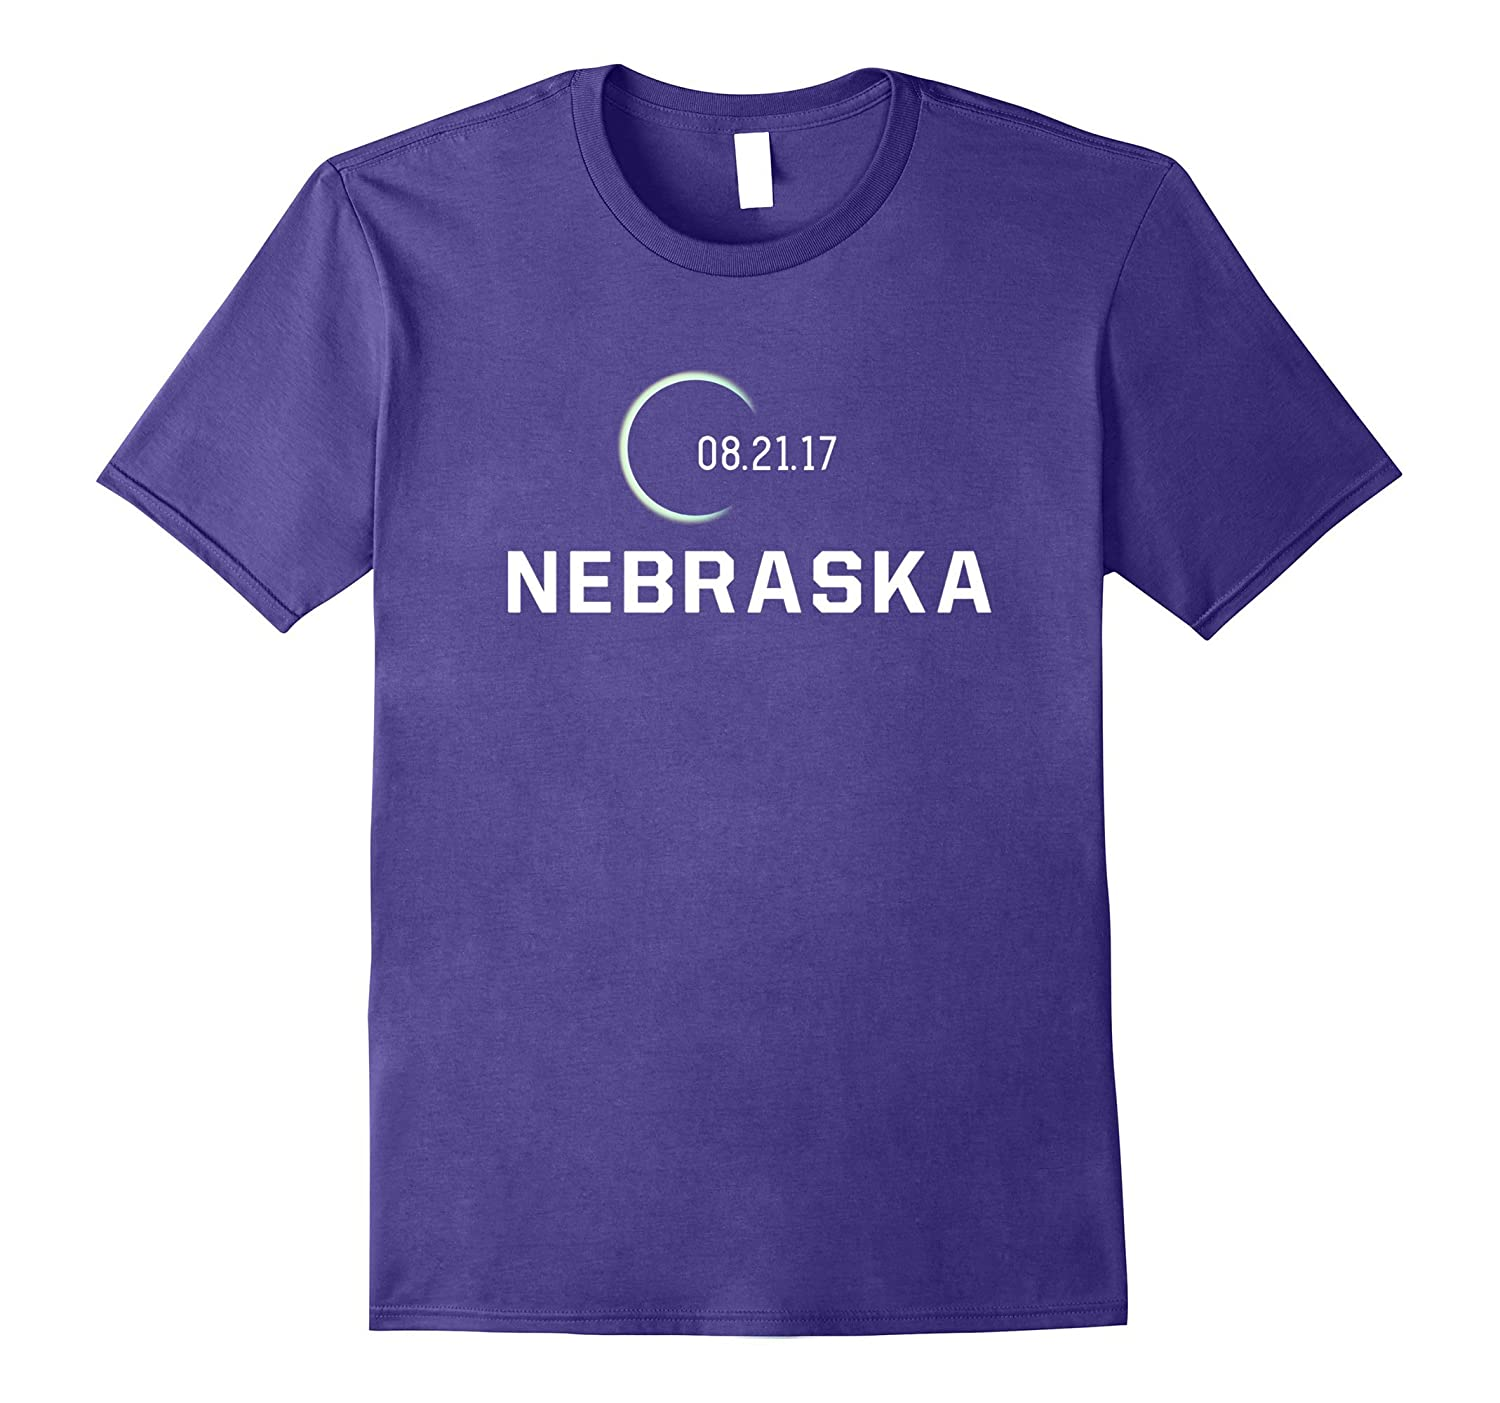 Nebraska Total Solar Eclipse Tshirt Kids Womens Men Eclipses-Art